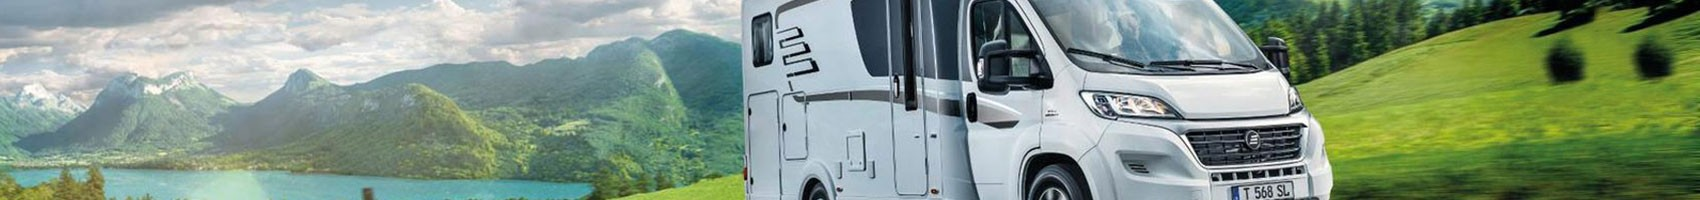 Tips for Driving a Motorhome Confidently